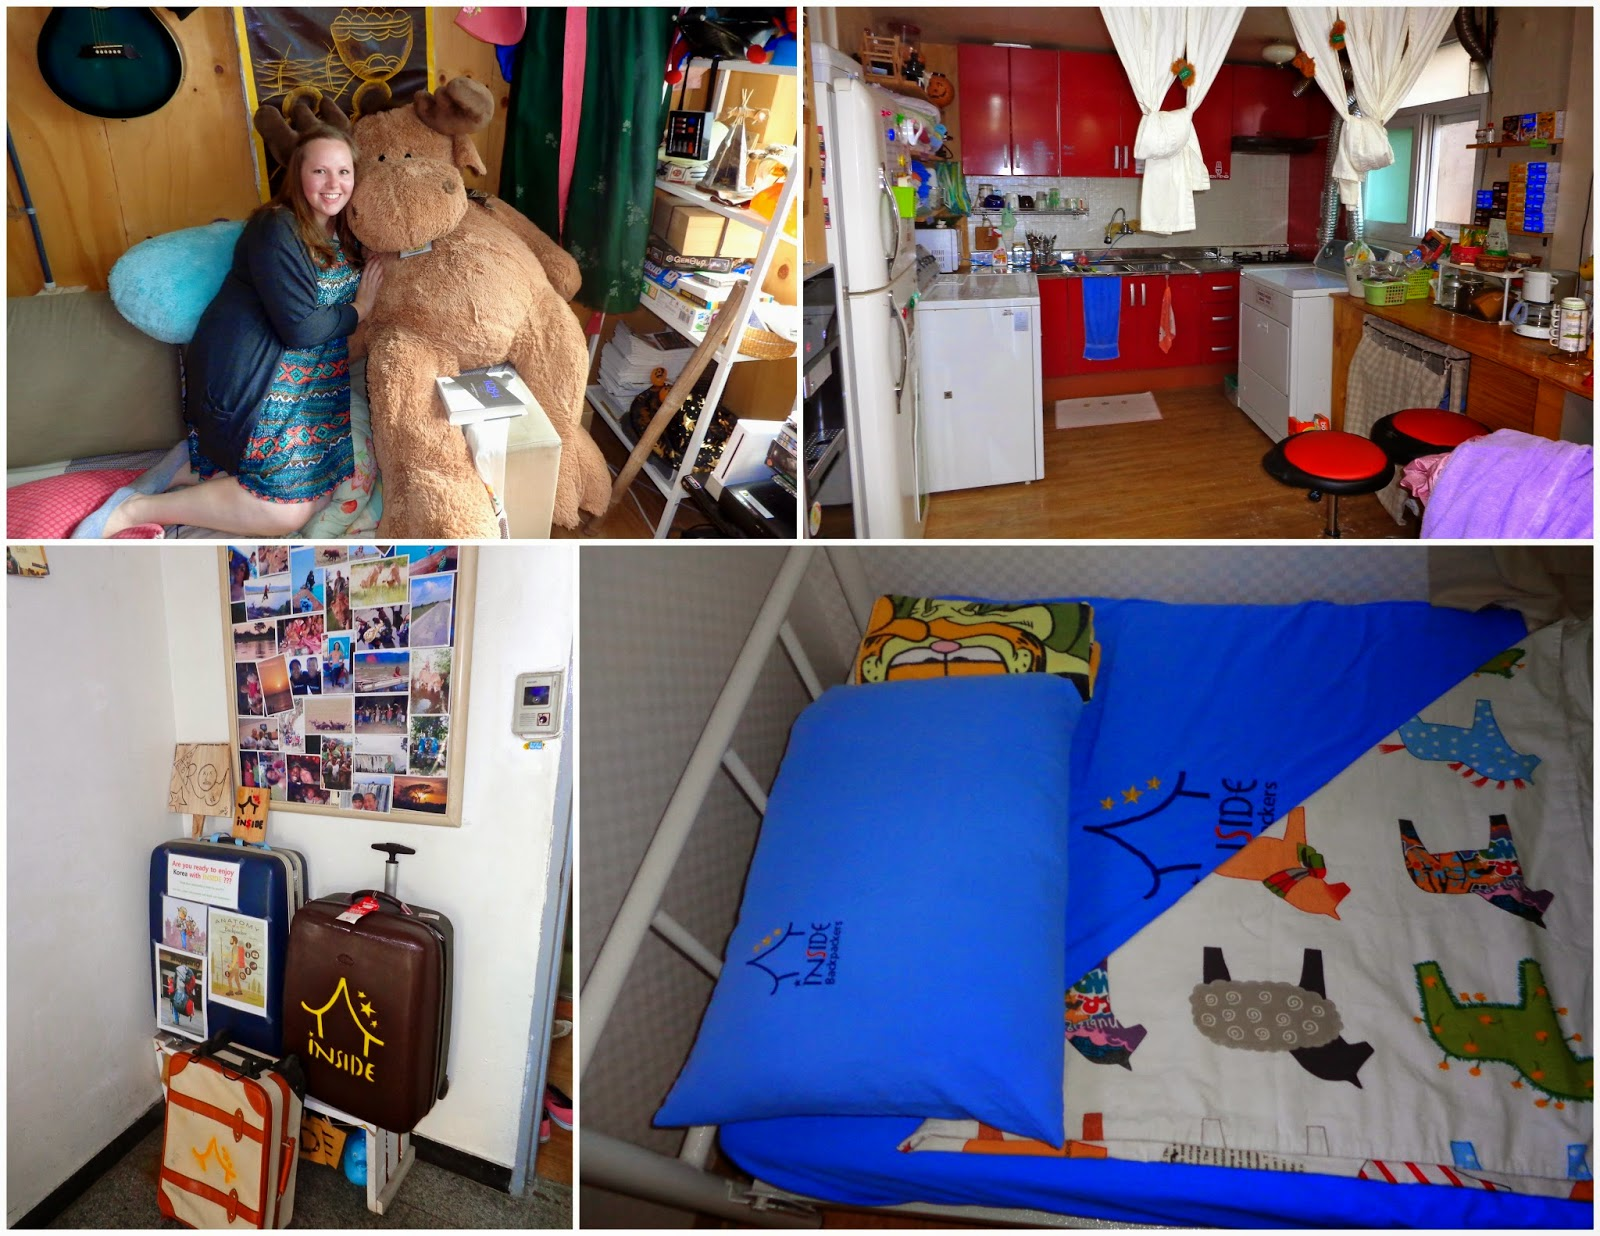 Backpackers-INSIDE-Seoul-Hostel